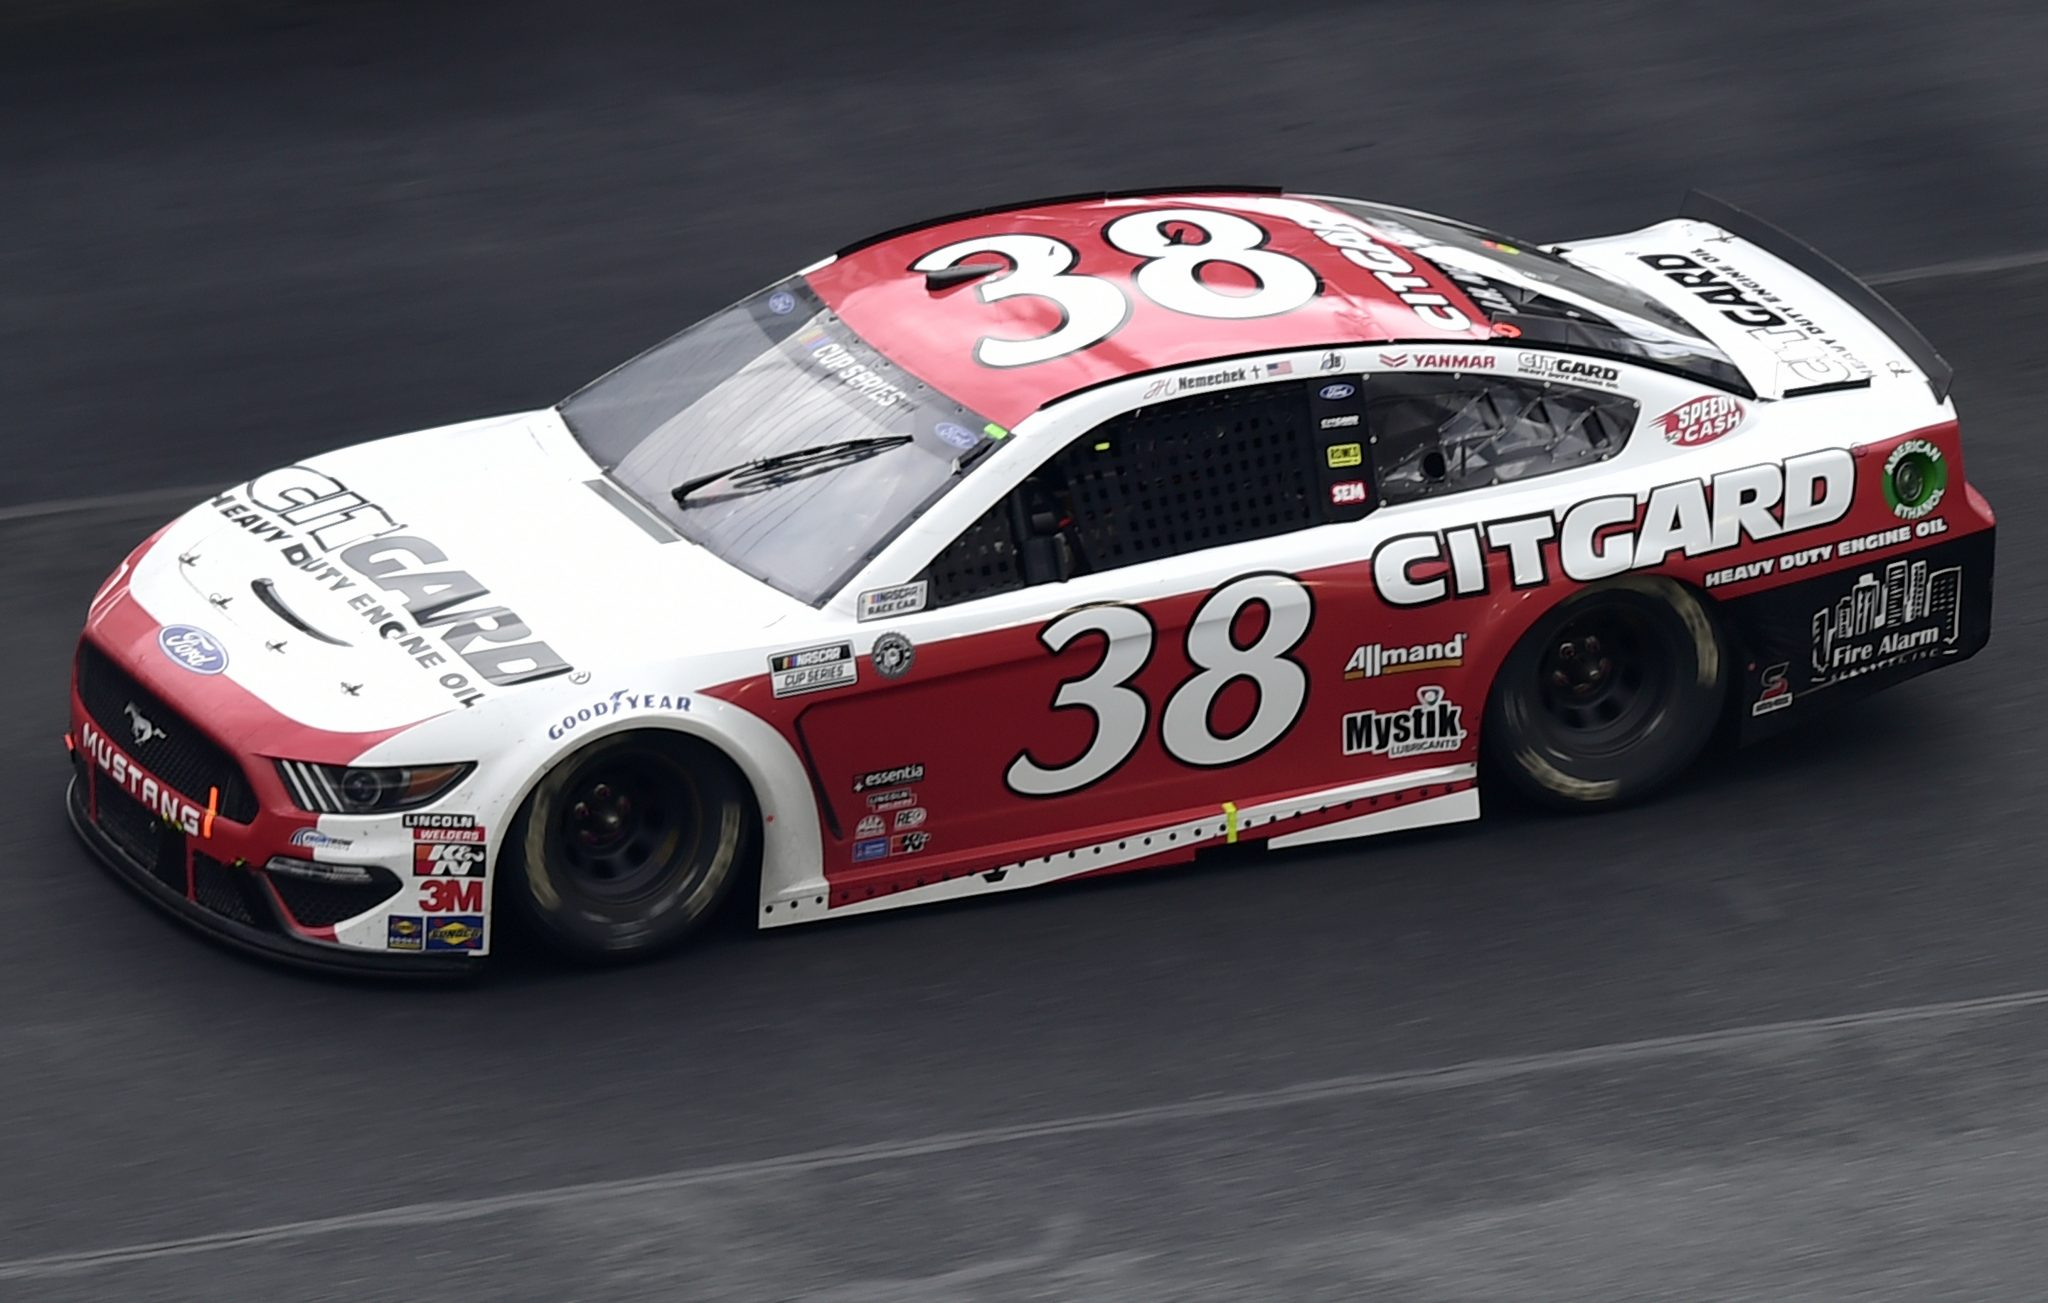 CONCORD, NORTH CAROLINA - OCTOBER 11: John H. Nemechek, driver of the #38 Citgard Ford, drives during the NASCAR Cup Series Bank of America ROVAL 400 at Charlotte Motor Speedway on October 11, 2020 in Concord, North Carolina. (Photo by Jared C. Tilton/Getty Images)   Getty Images